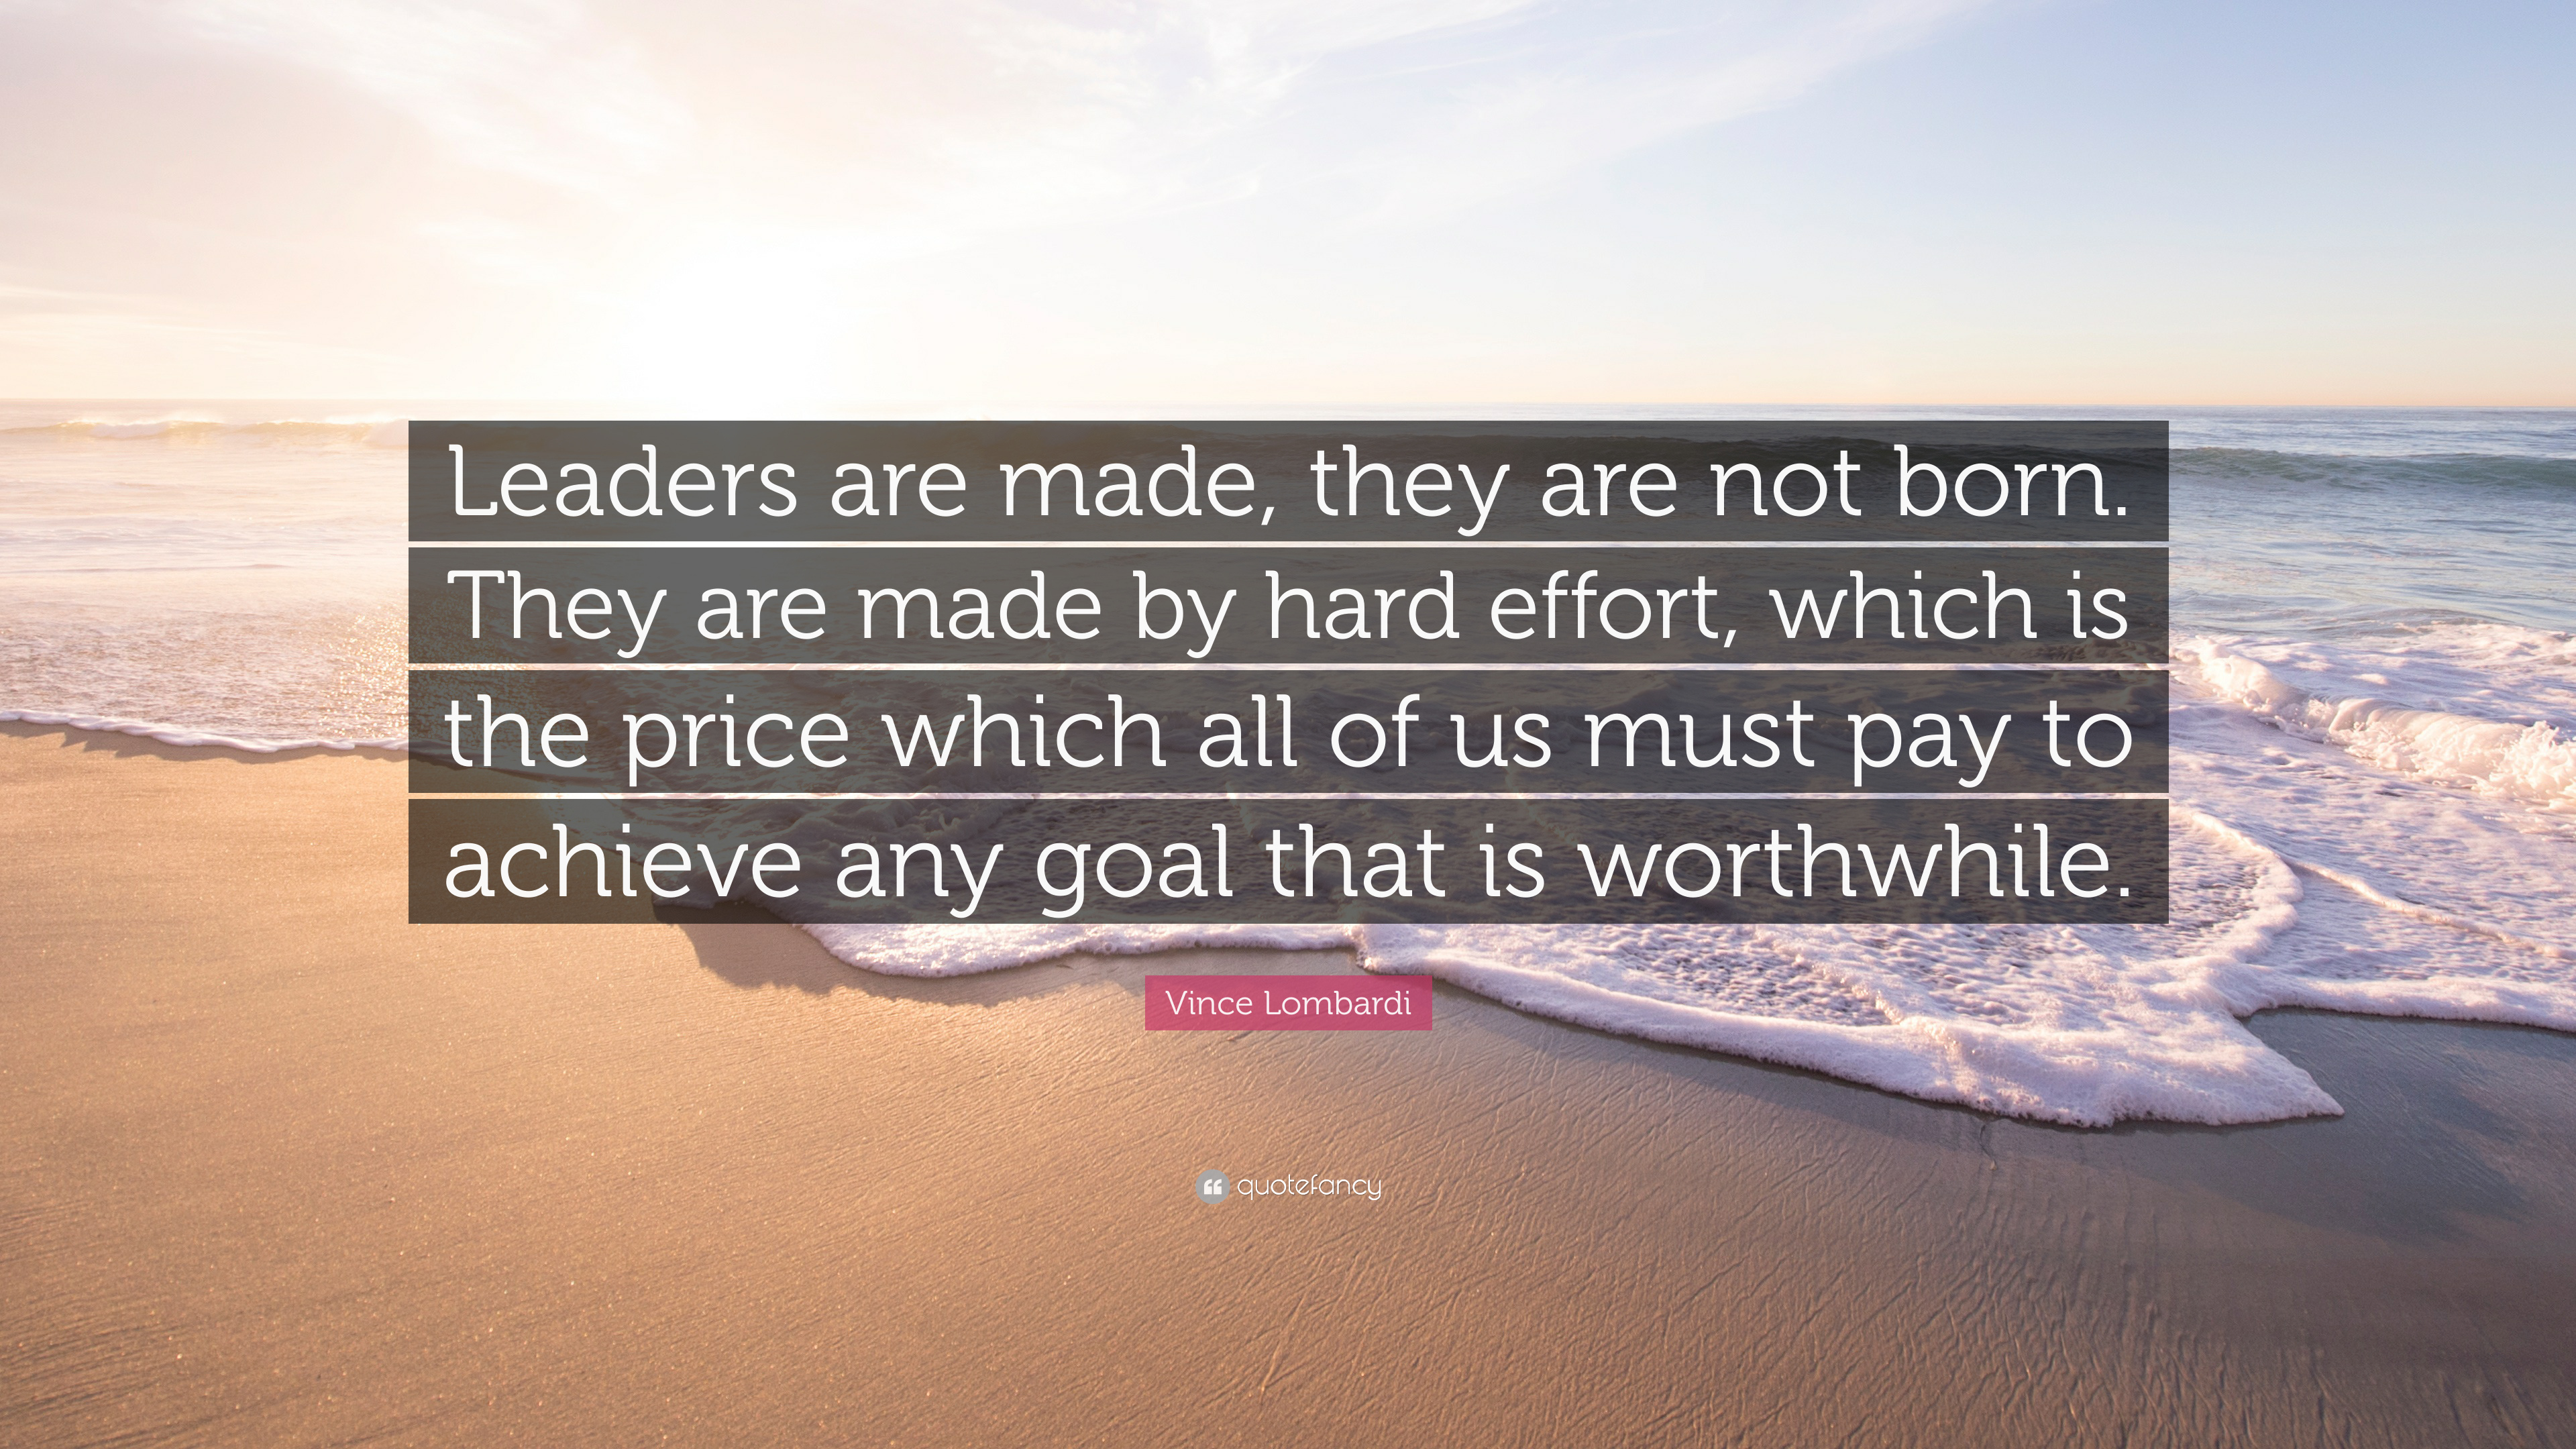 a leader is made not born